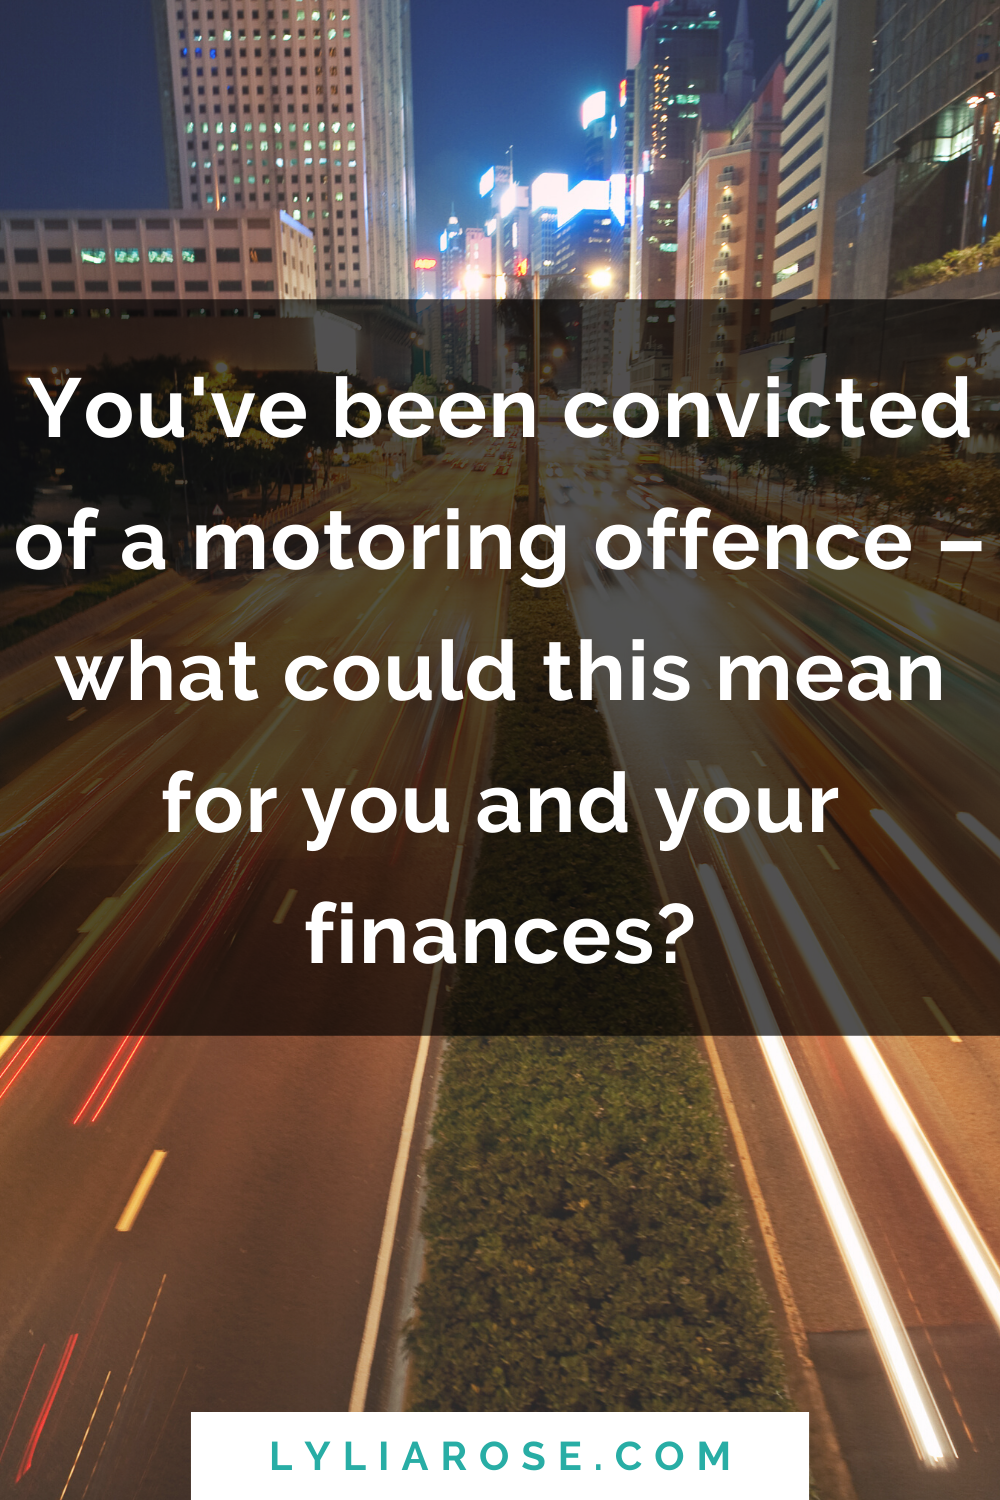 So, youve been convicted of a motoring offence – what could this mean for